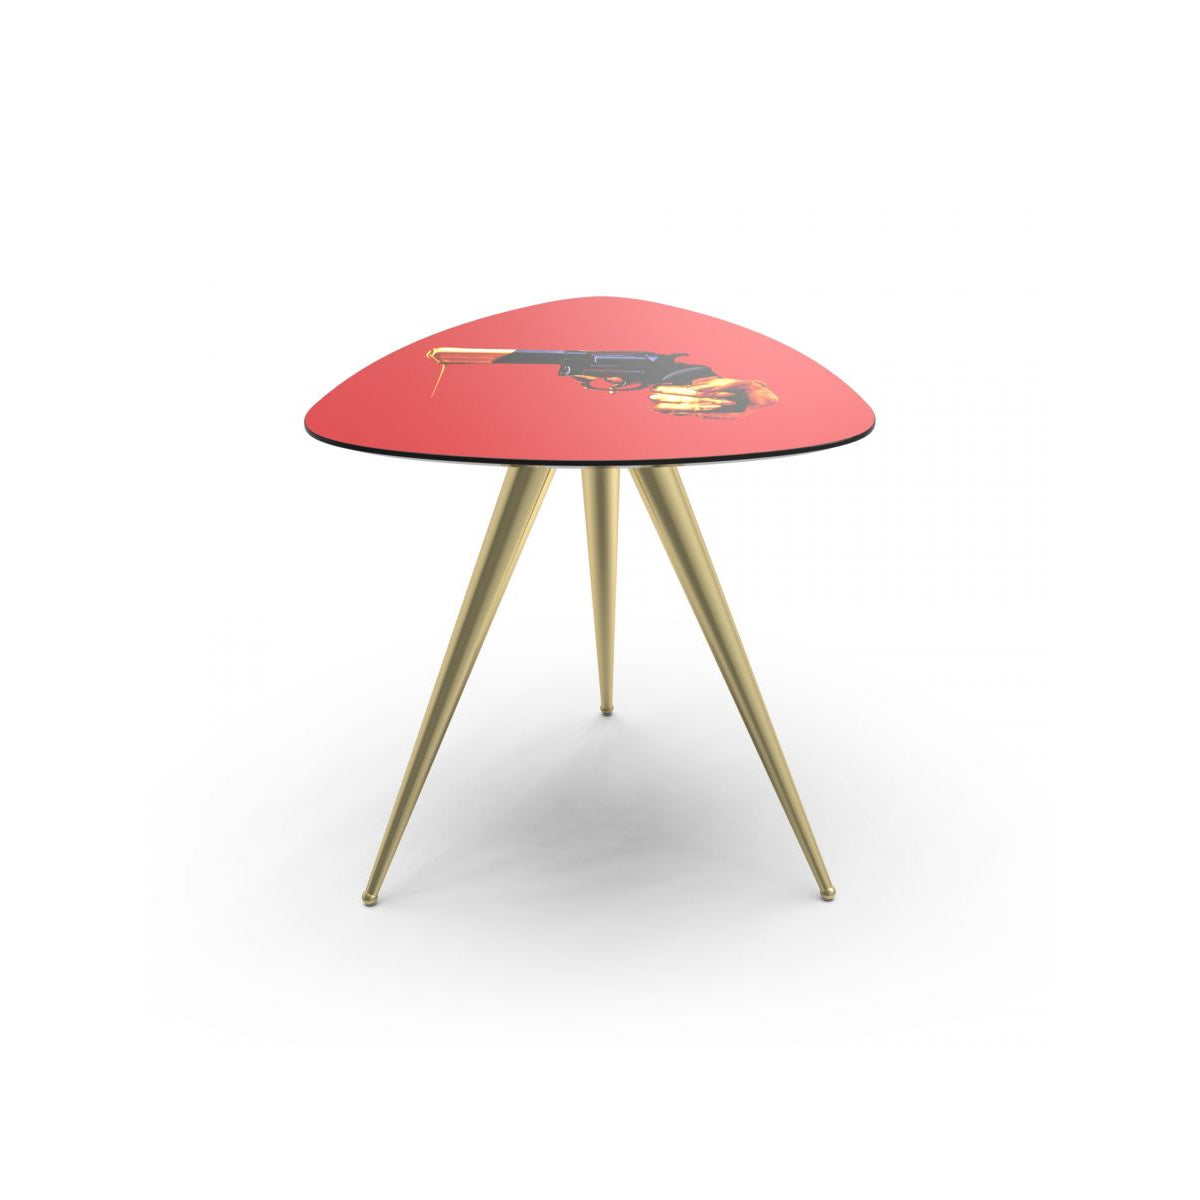 Seletti X Toiletpaper 'Revolver' Side Table